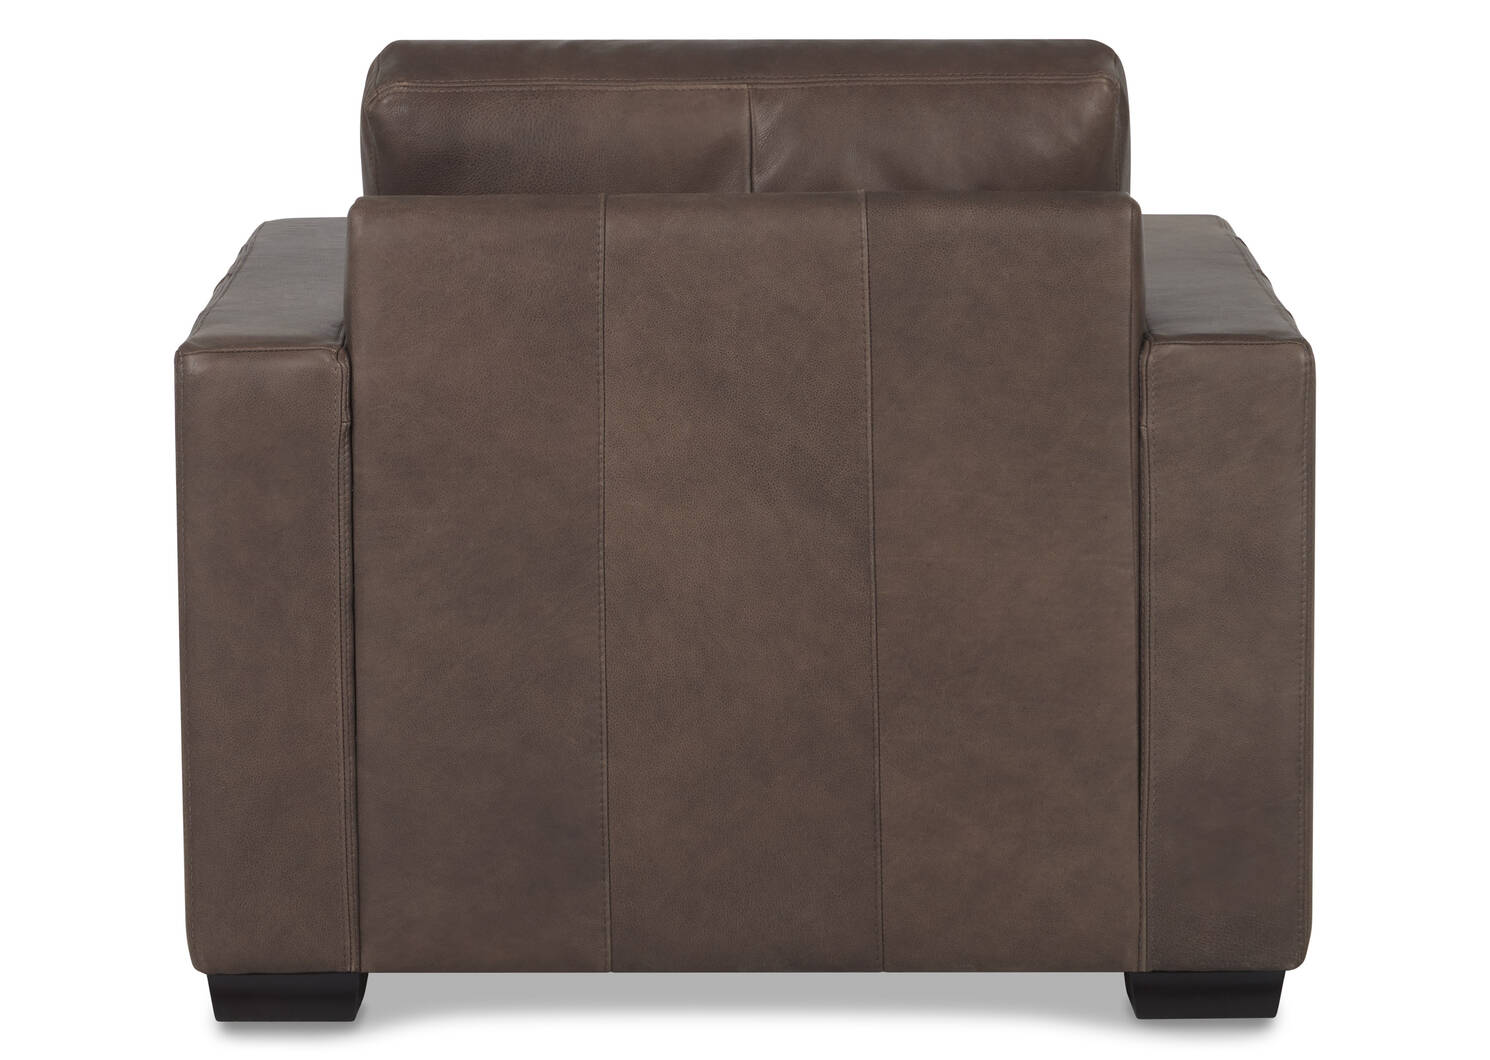 Brewer Leather Armchair -Attica Cocoa